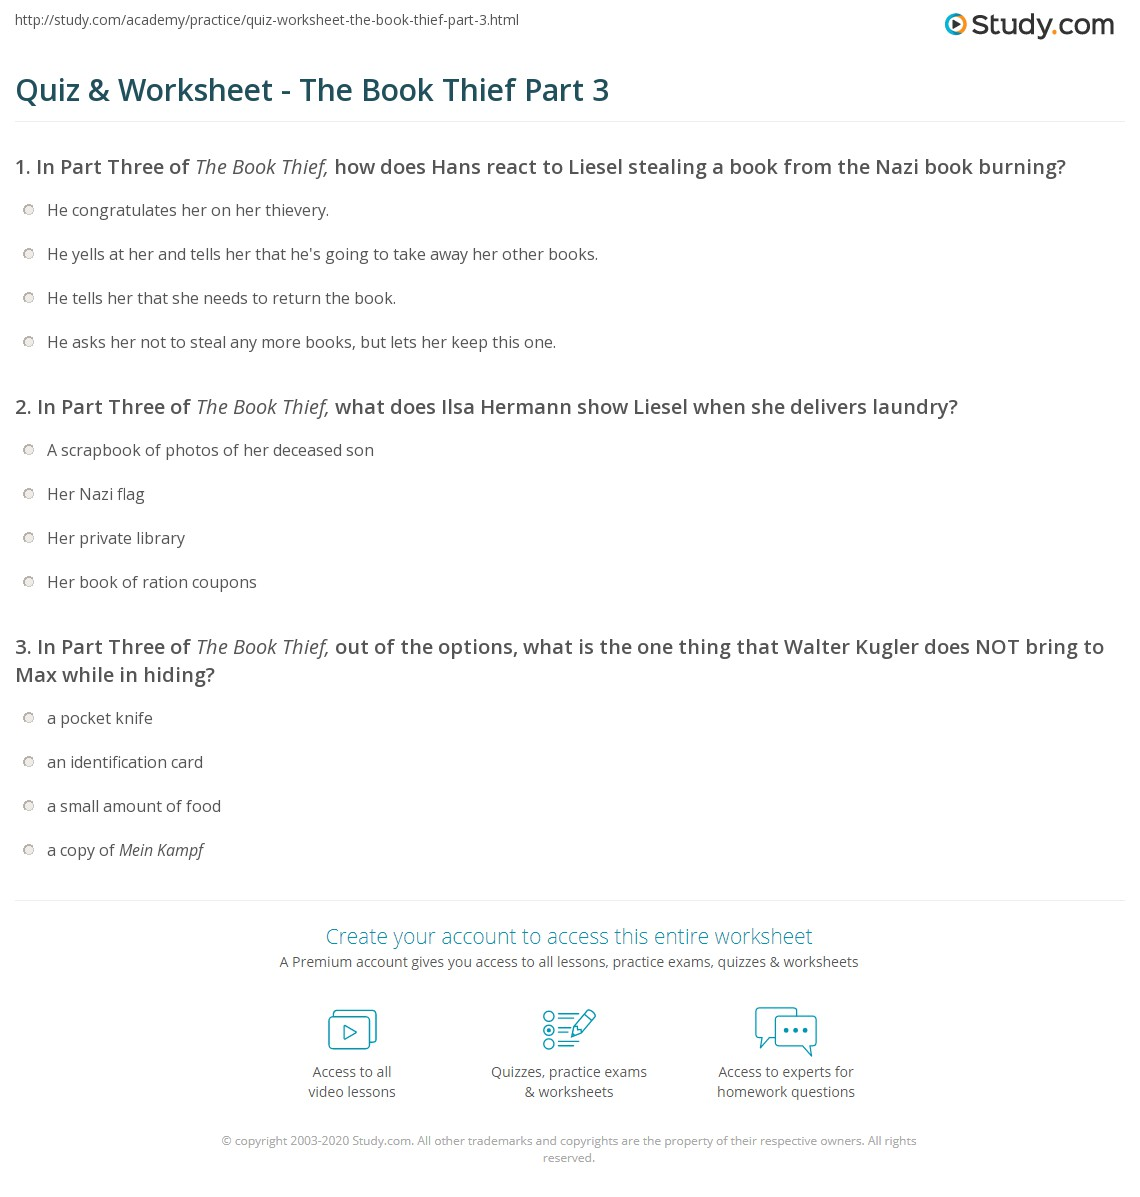 quiz worksheet the book thief part 3 com in part three of the book thief what does ilsa hermann show liesel when she delivers laundry